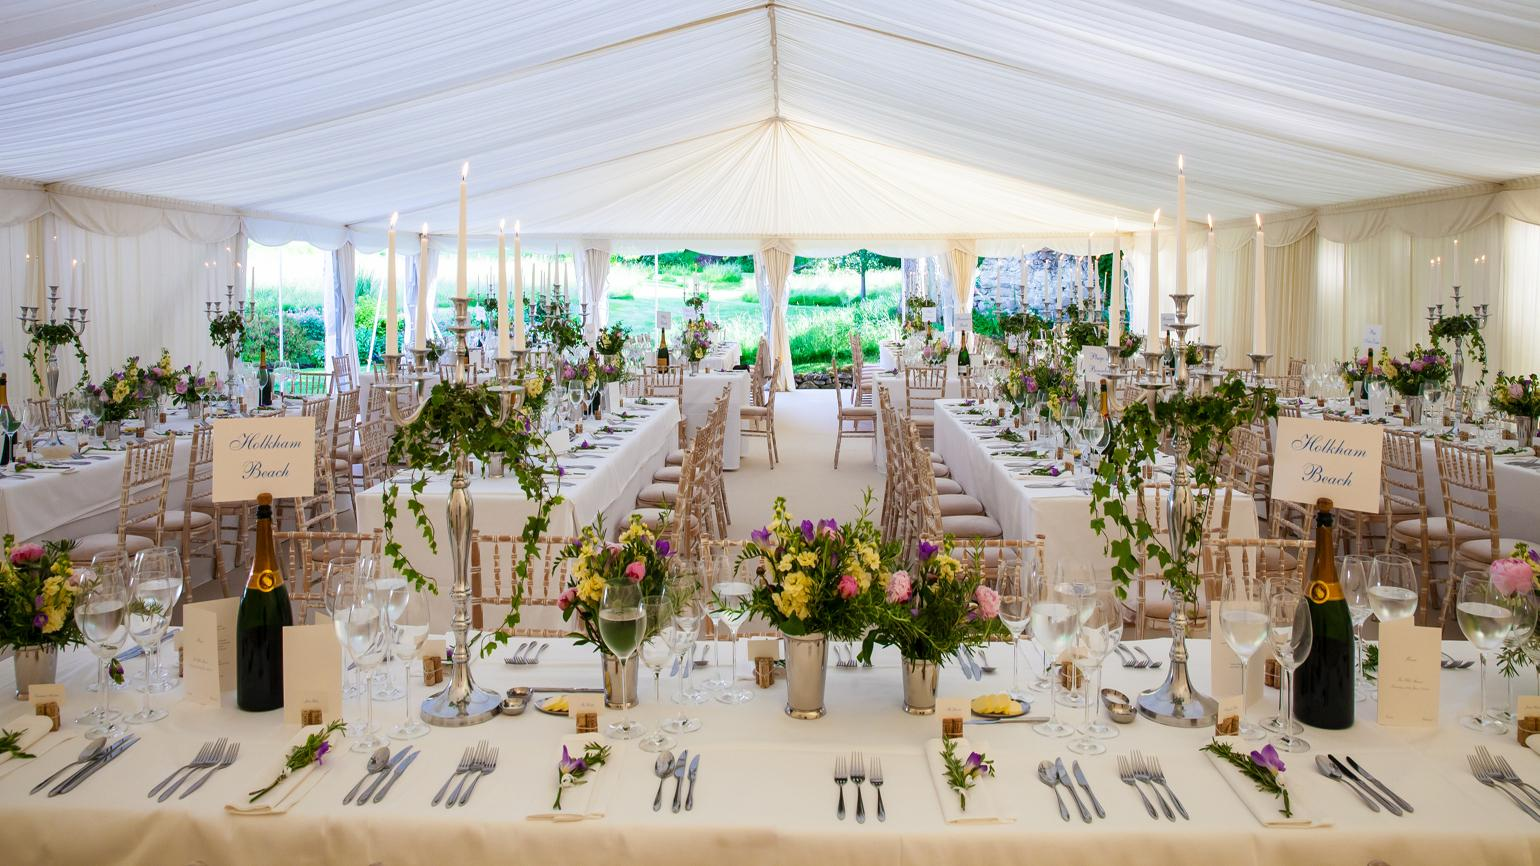 Beautiful table settings in a wedding marquee at Wakehurst